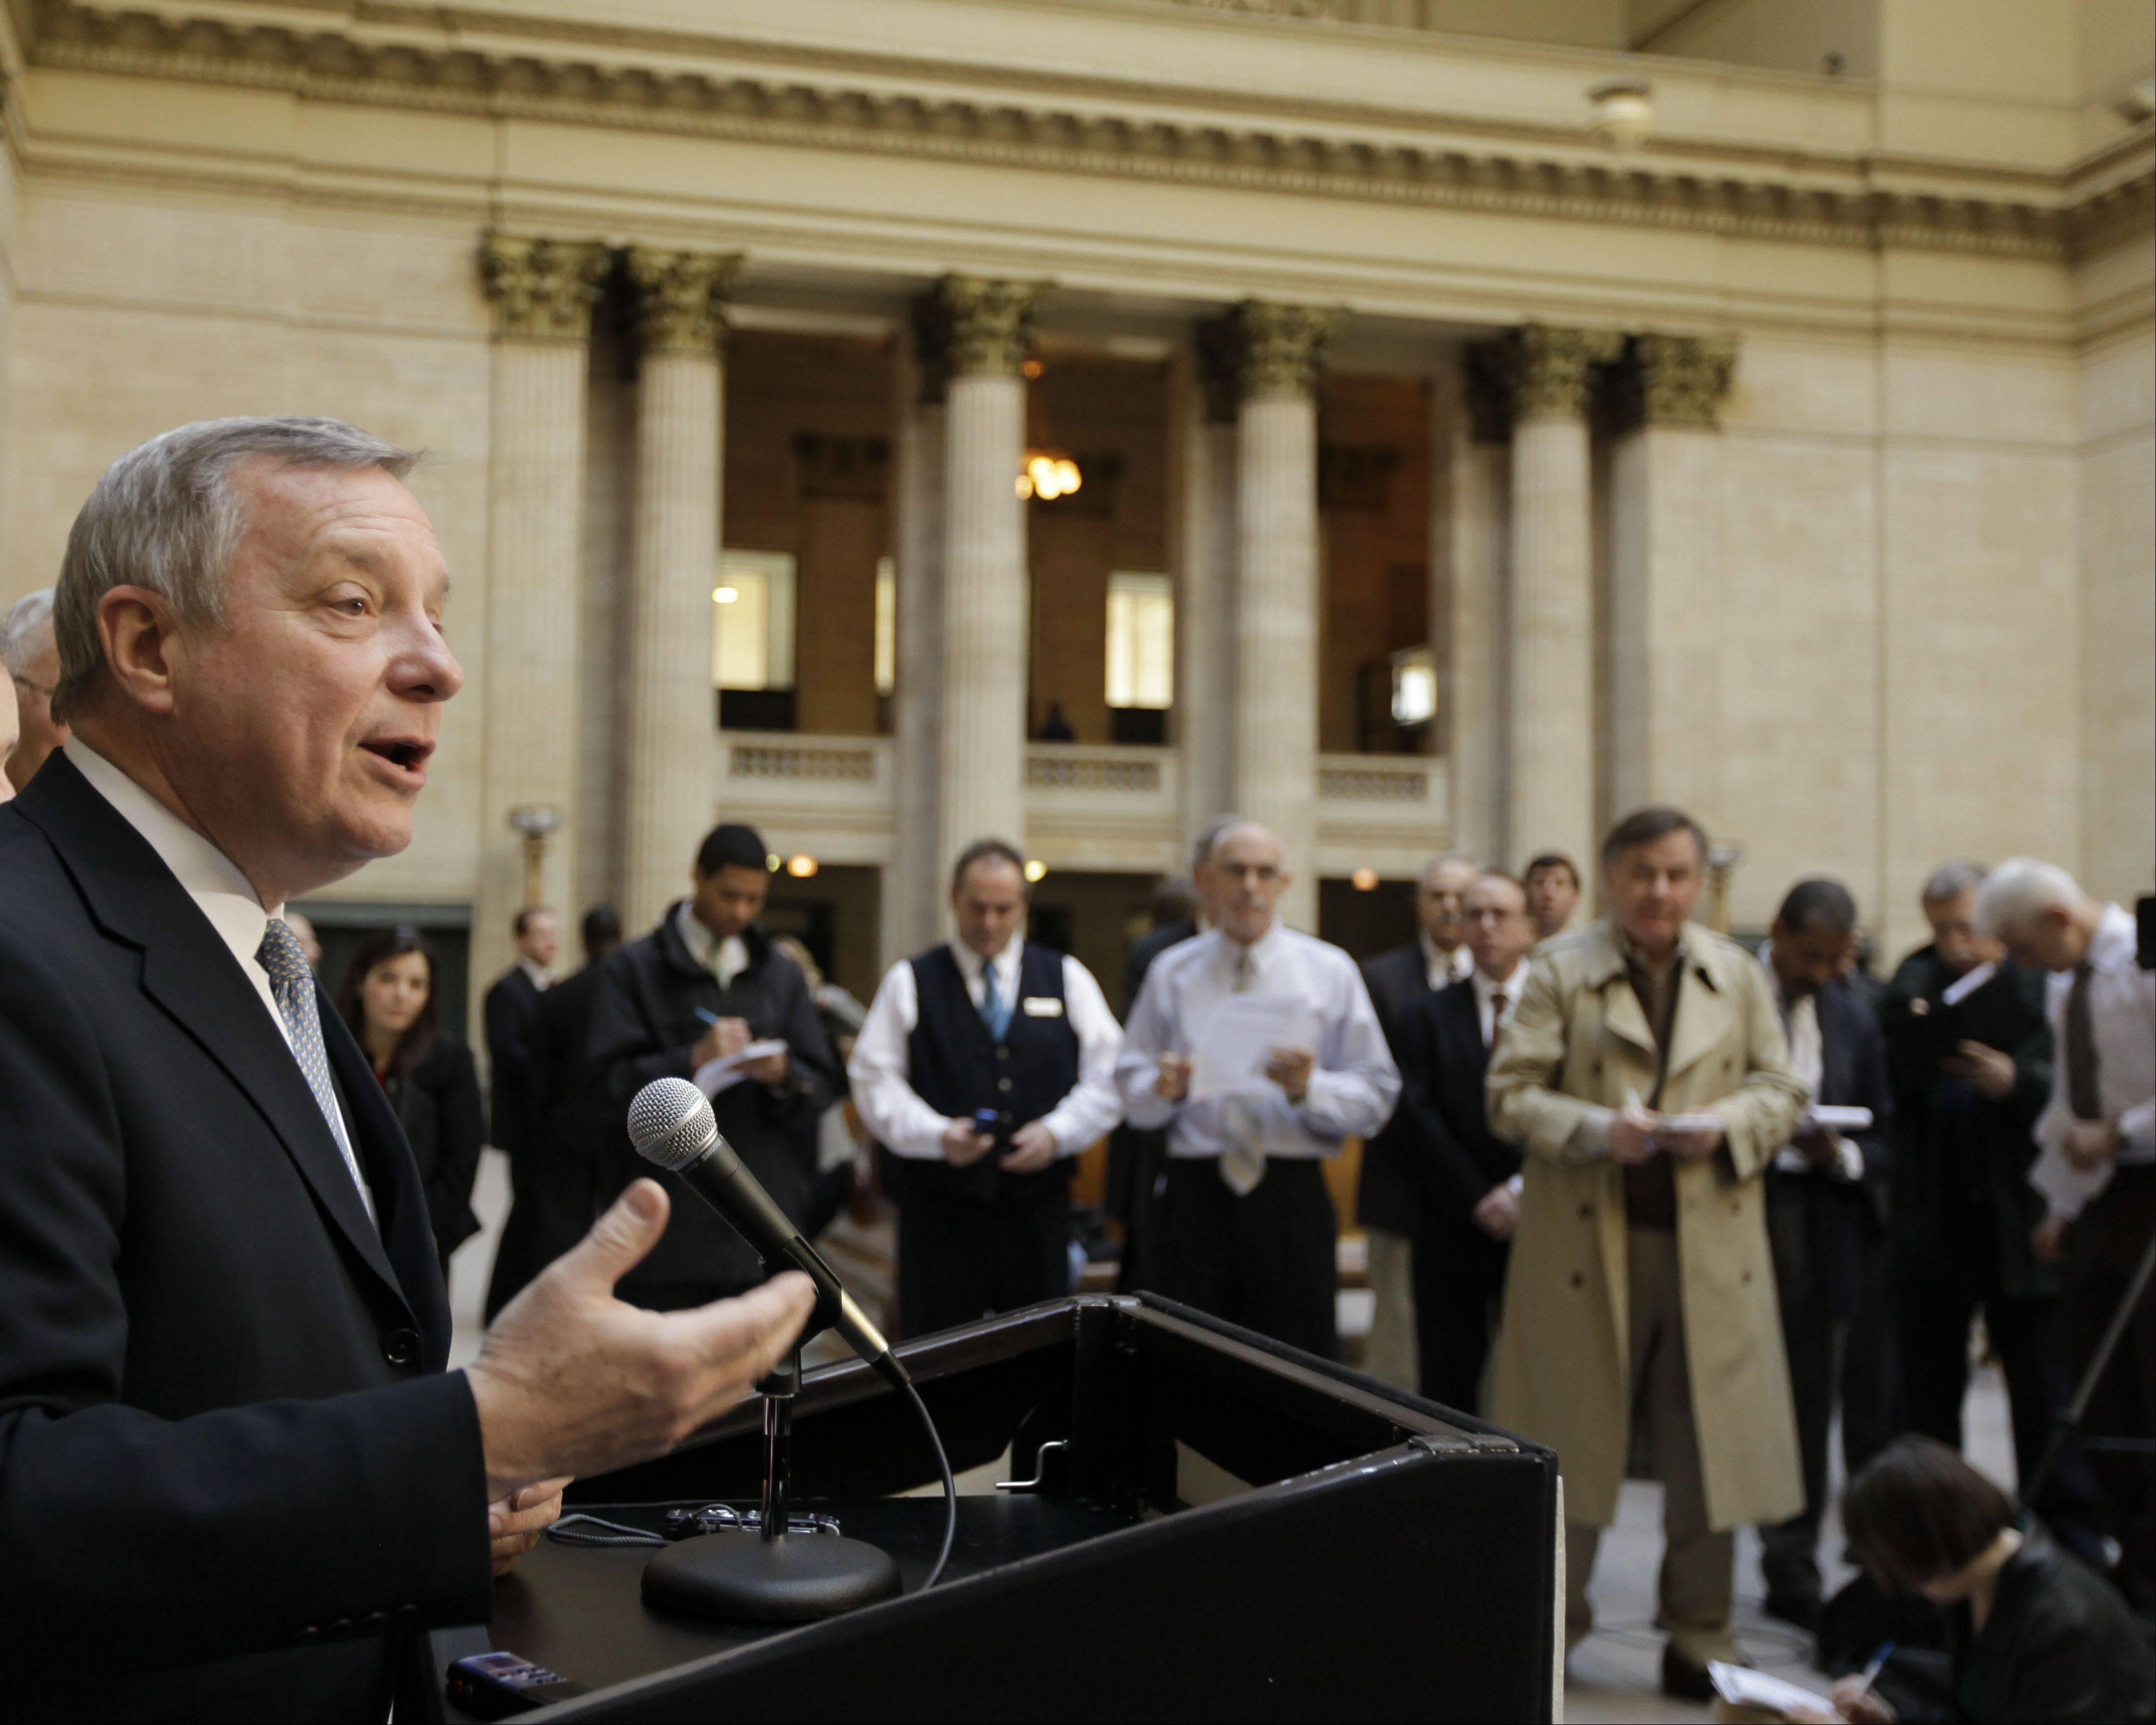 Durbin: When will Metra add auto-braking system for trains?